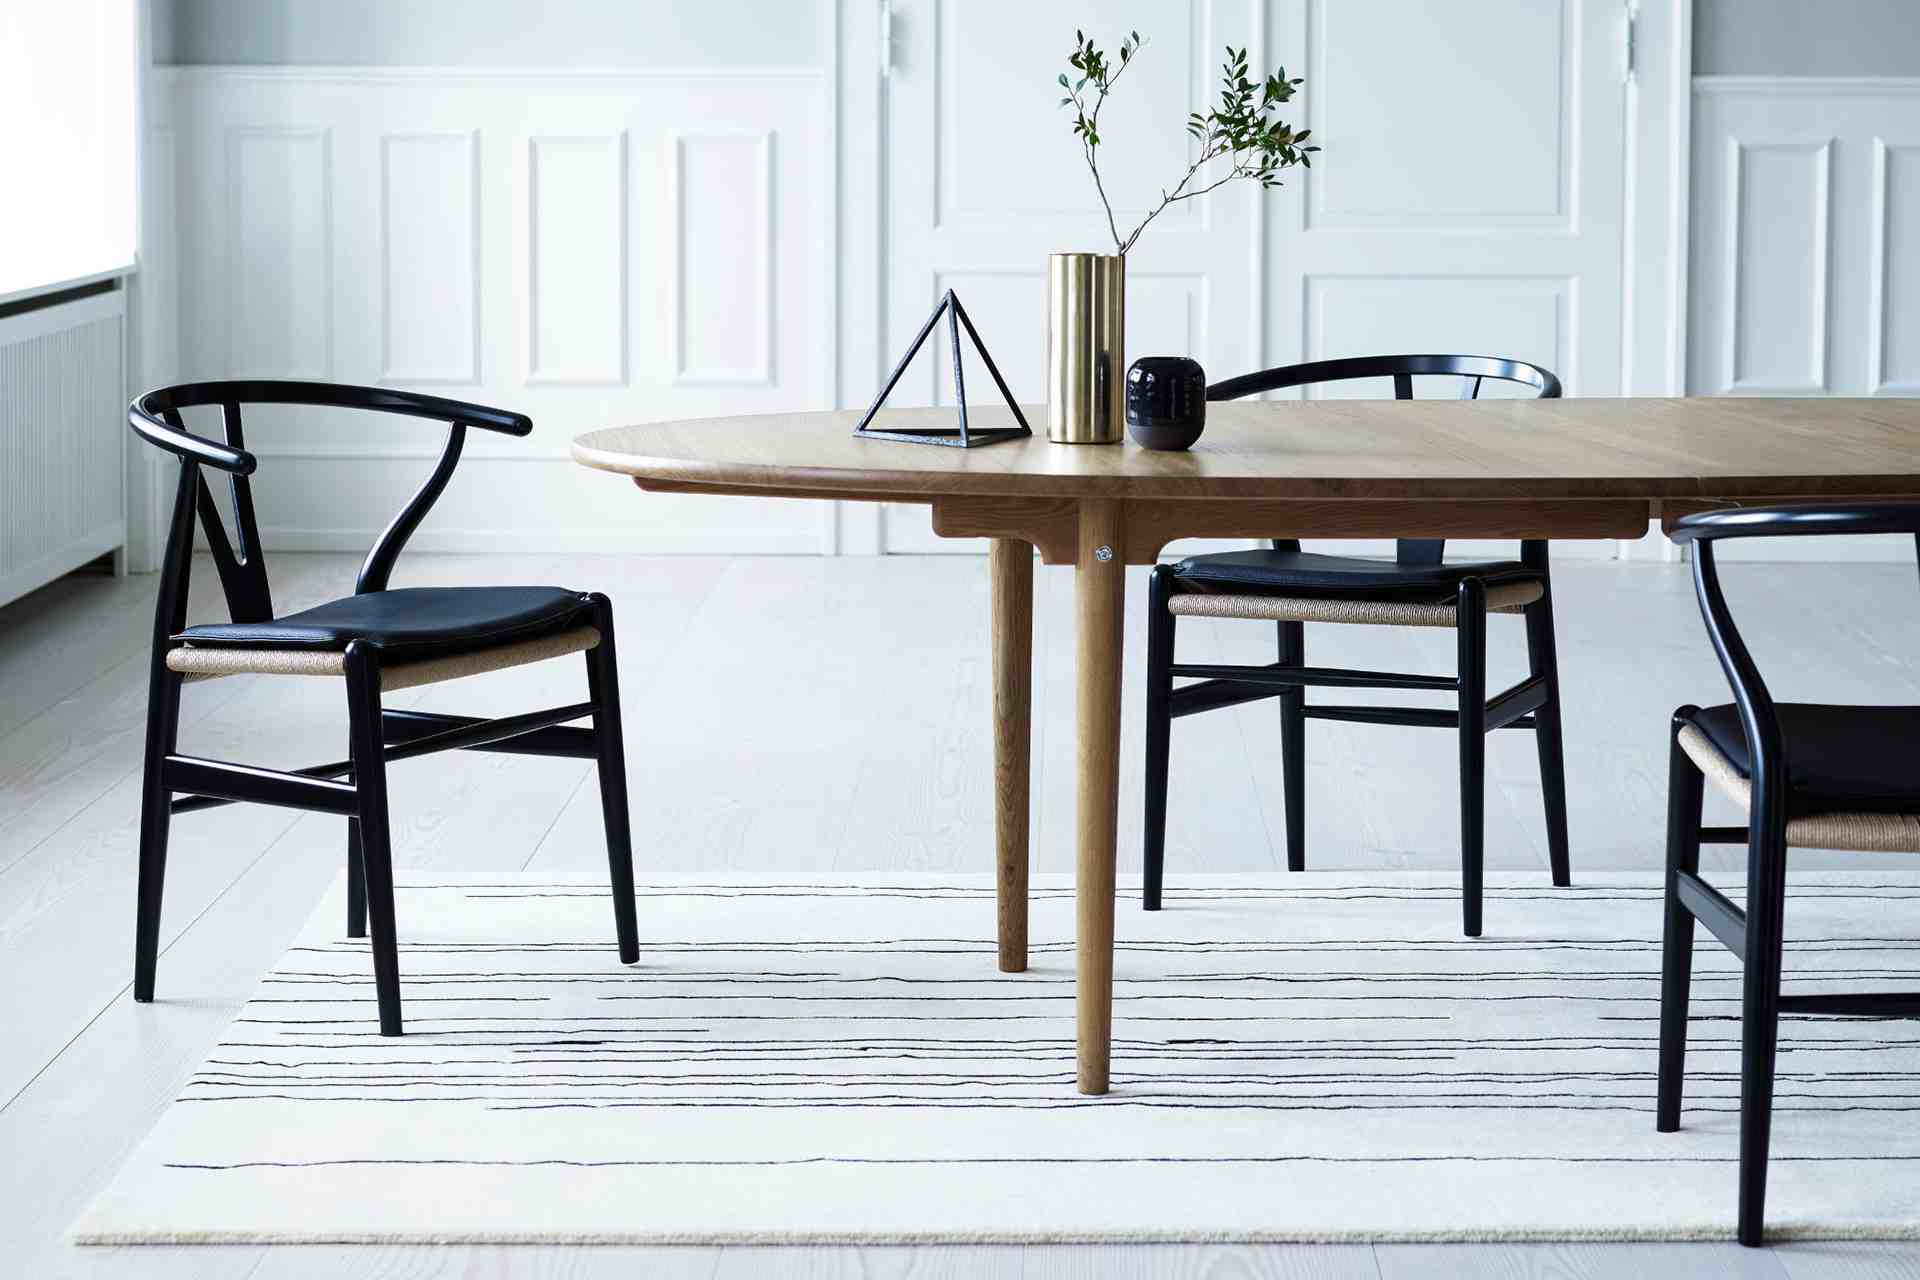 wow utrecht interior design furnishing carl hansen 01